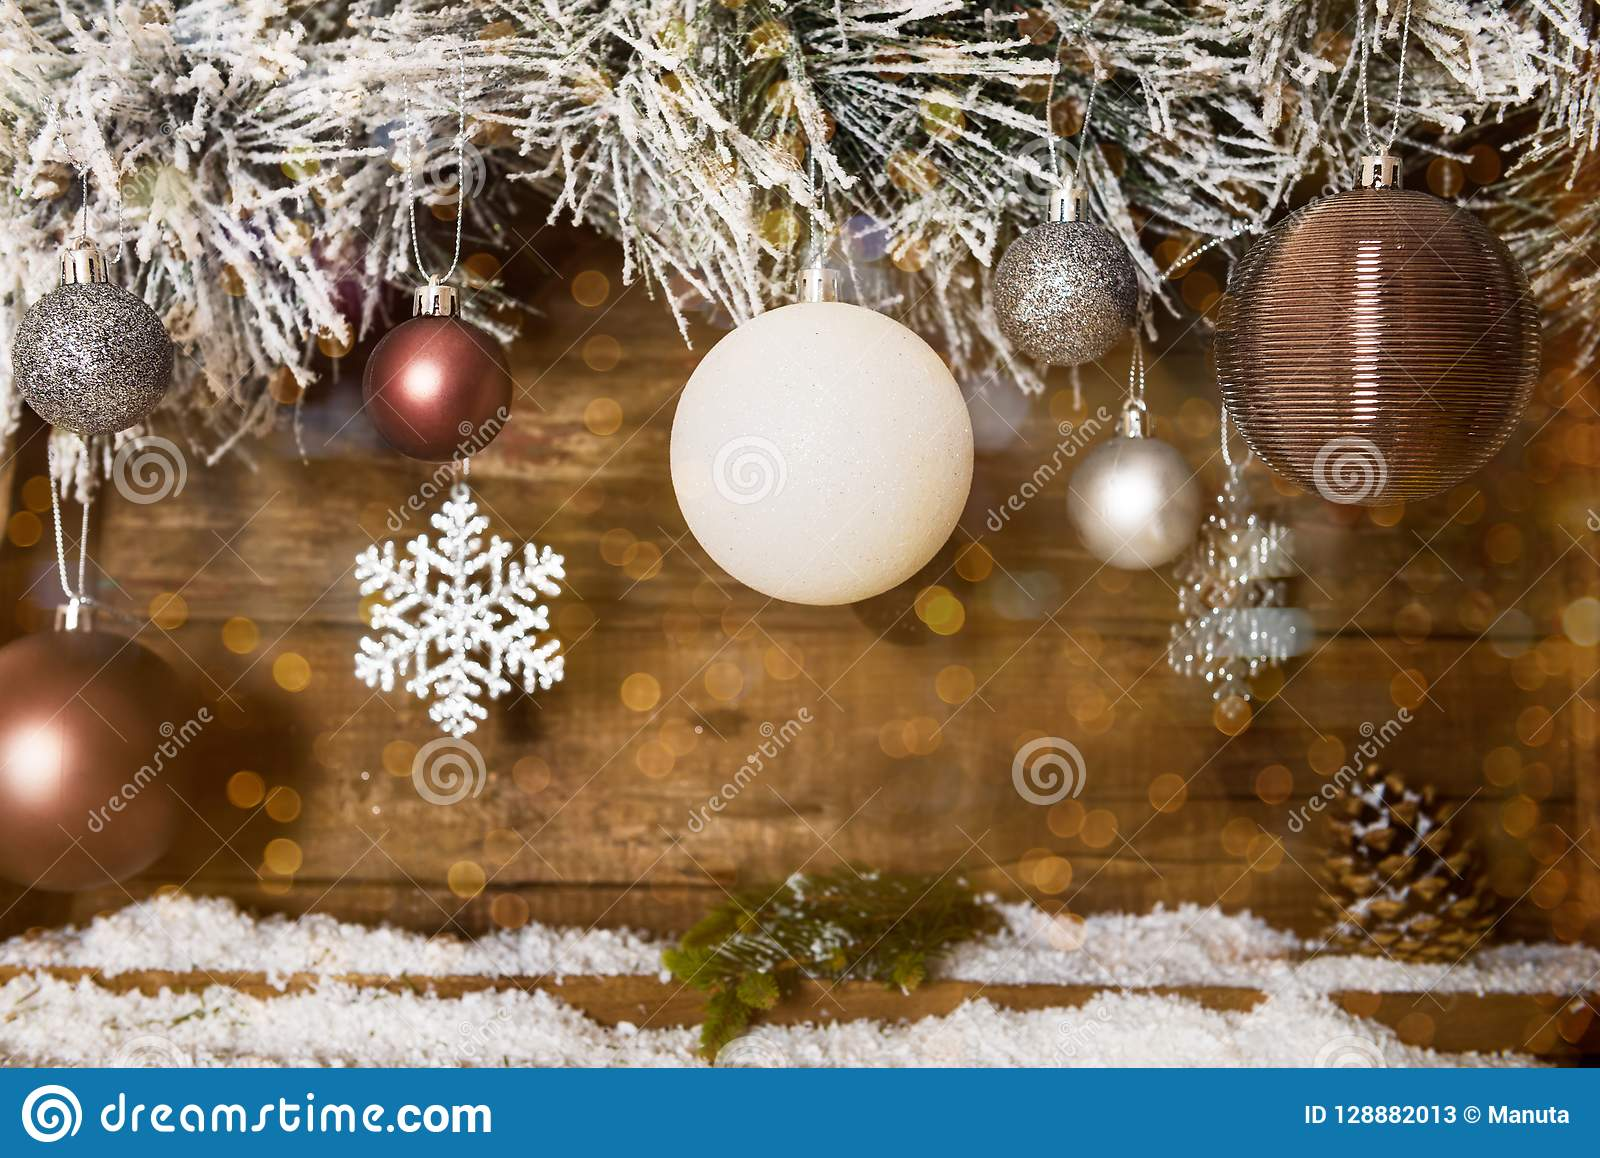 Christmas Frame from Snowy Xmas tree branches and Wooden Calendar